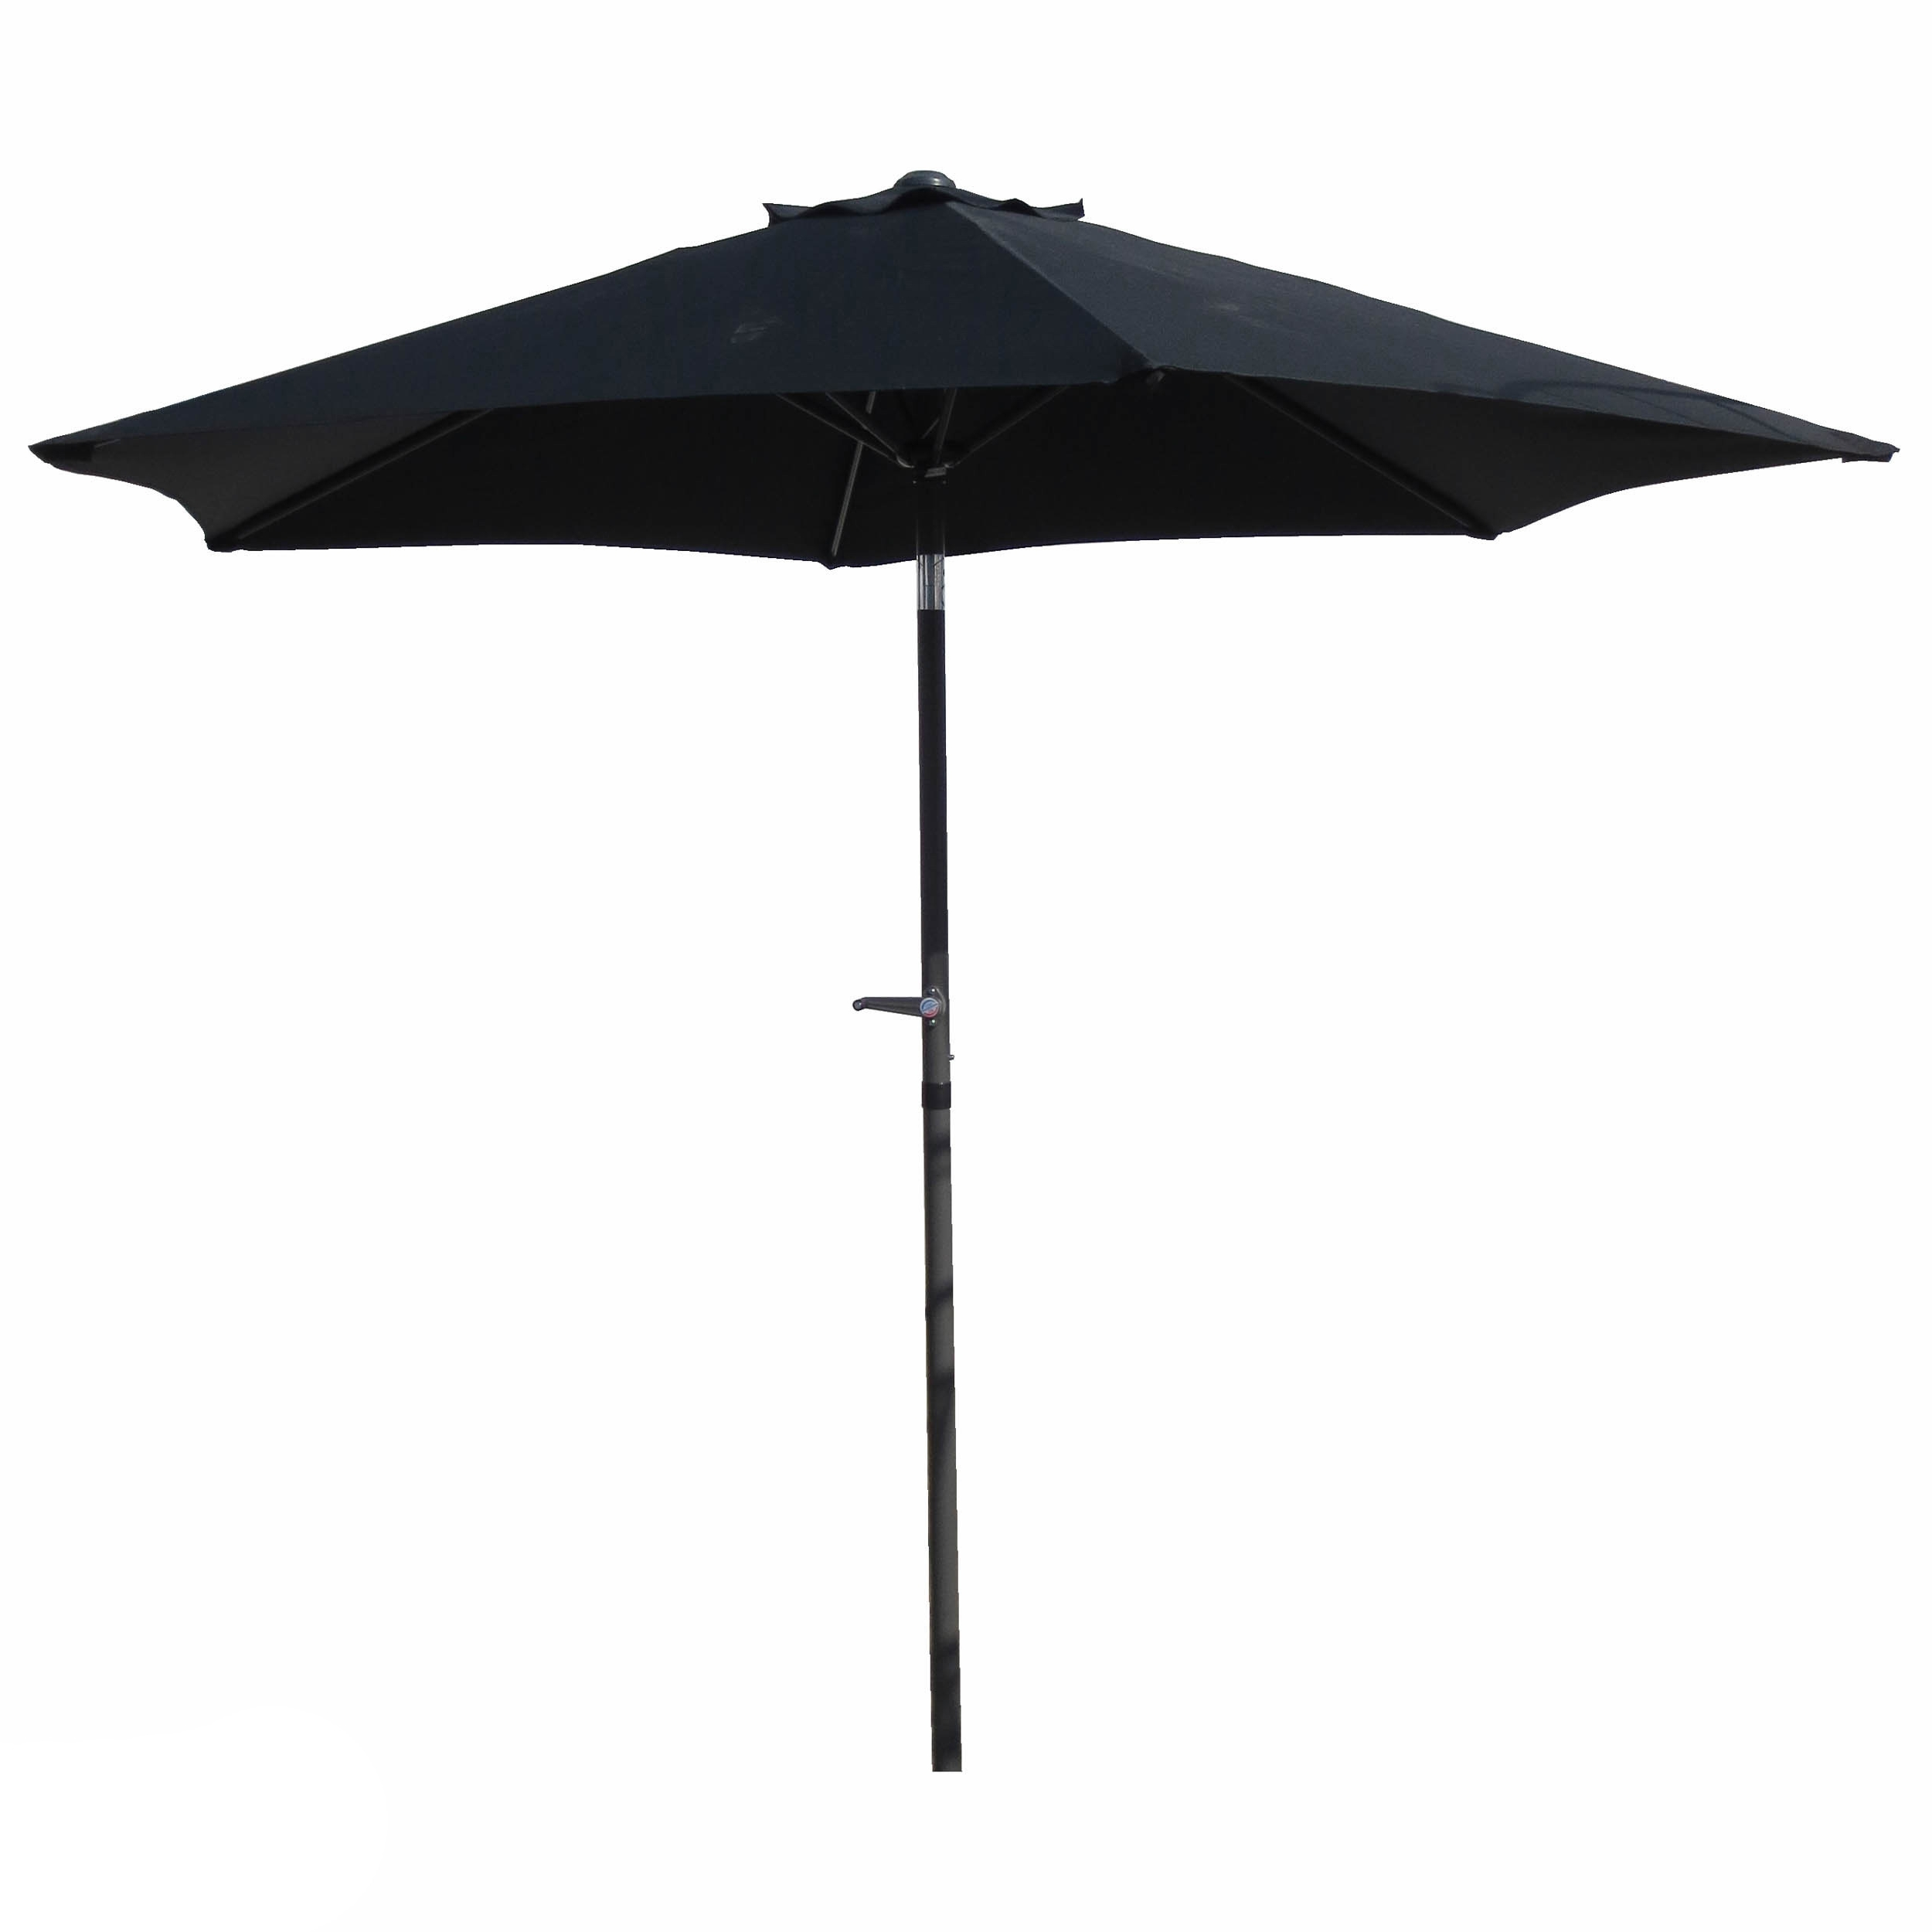 Most Recently Released Patio Umbrellas With White Pole With Regard To Shop International Caravan Patio Umbrella 8 Foot – On Sale – Free (View 7 of 20)